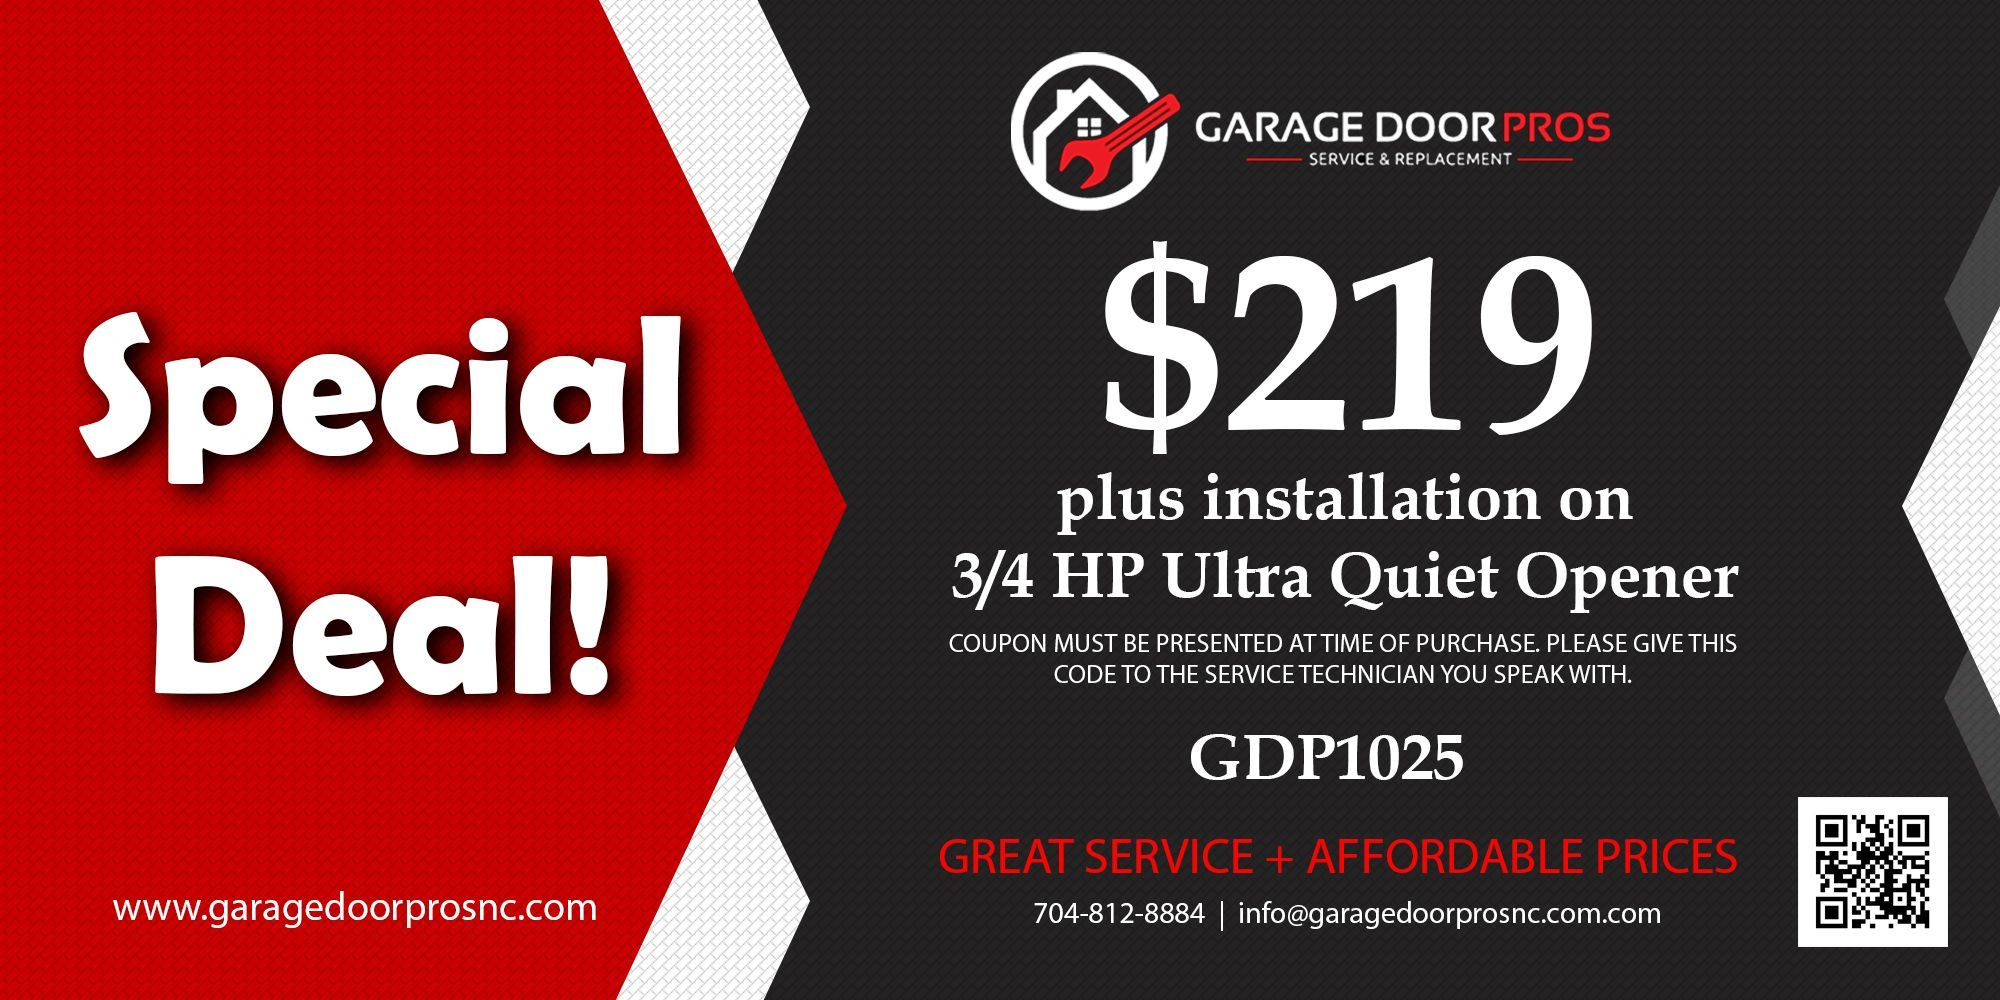 Find The Leading Garage Door Opener Repair Charlotte Nc. We Have Friendly,  Fully Trained